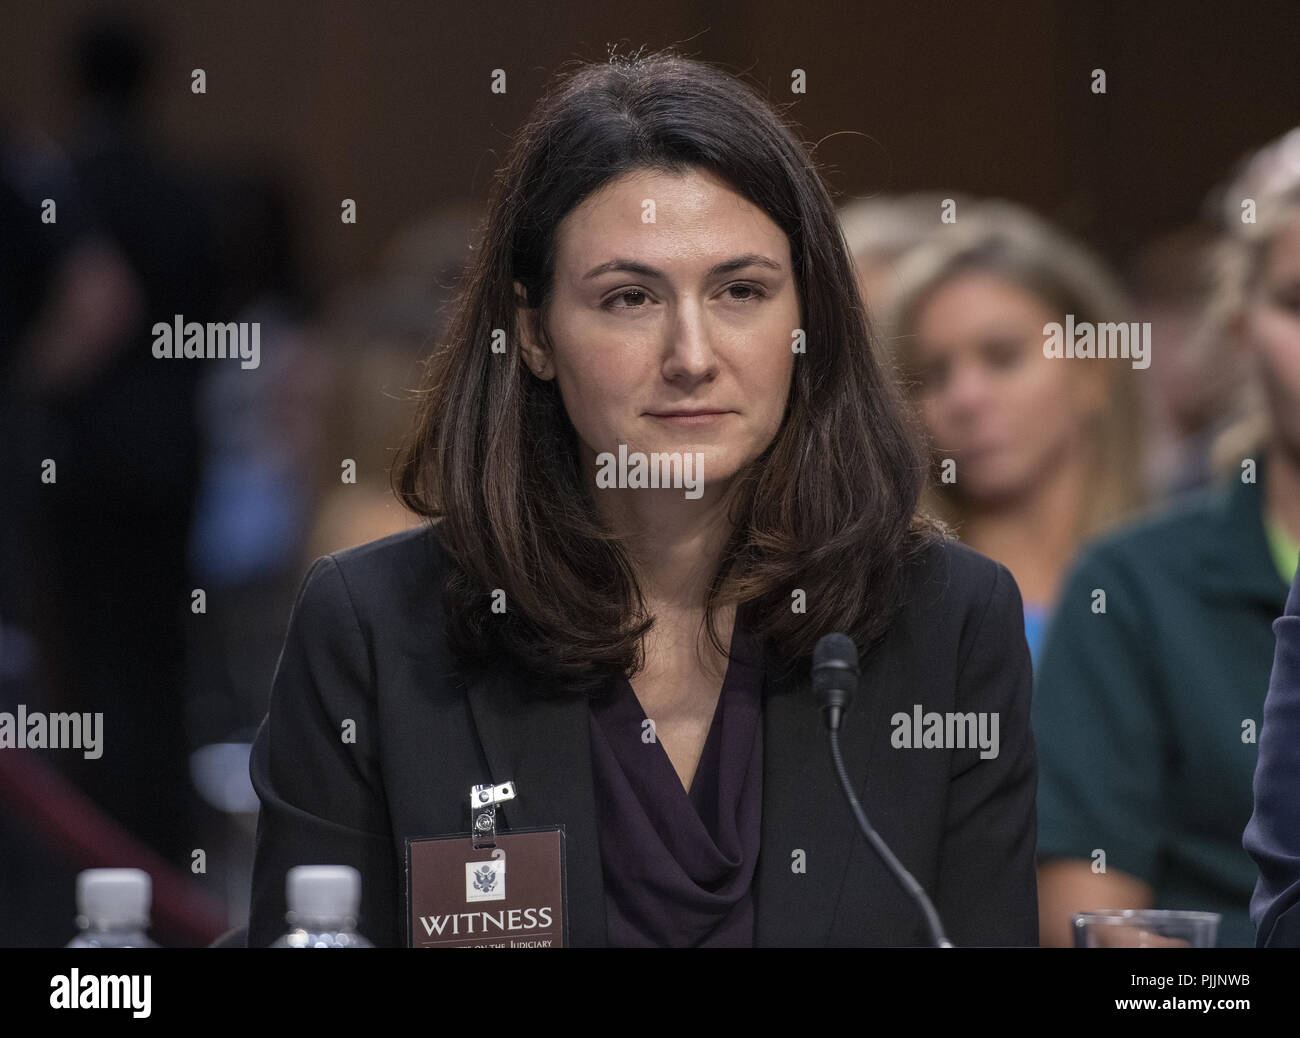 Washington, District of Columbia, USA. 7th Sep, 2018. Professor Rebecca Ingber, Associate Professor of Law.Boston University School of Law, Boston, Massachusetts, testifies against the nomination of Judge Brett Kavanaugh before the US Senate Judiciary Committee on his nomination as Associate Justice of the US Supreme Court to replace the retiring Justice Anthony Kennedy on Capitol Hill in Washington, DC on Friday, September 7, 2018 Credit: Ron Sachs/CNP/ZUMA Wire/Alamy Live News - Stock Image